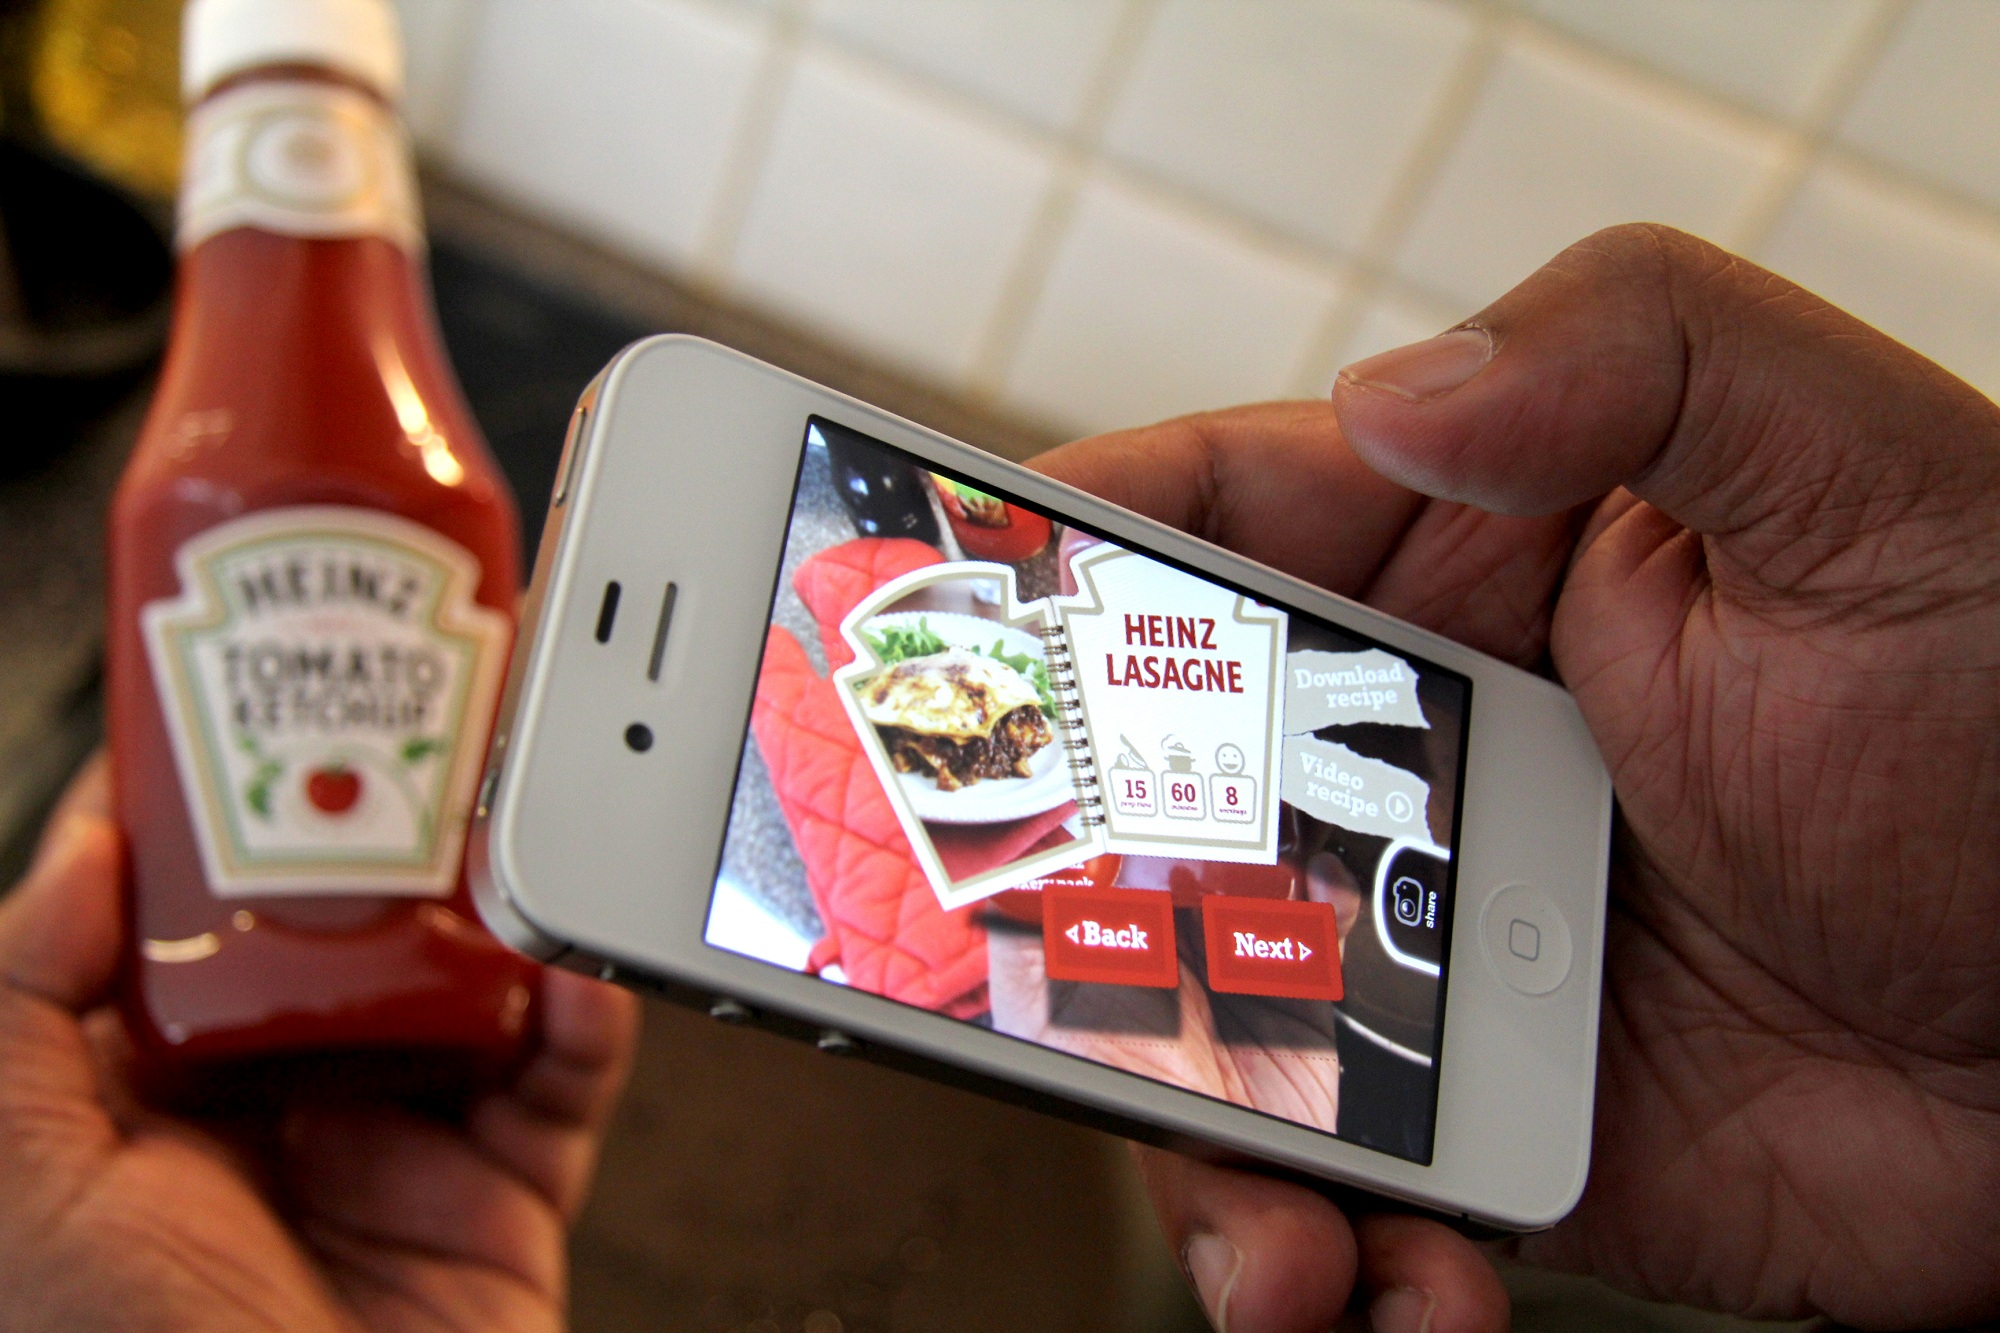 Blippar allows you to scan and read nutritional information. Perfect for counting calories!